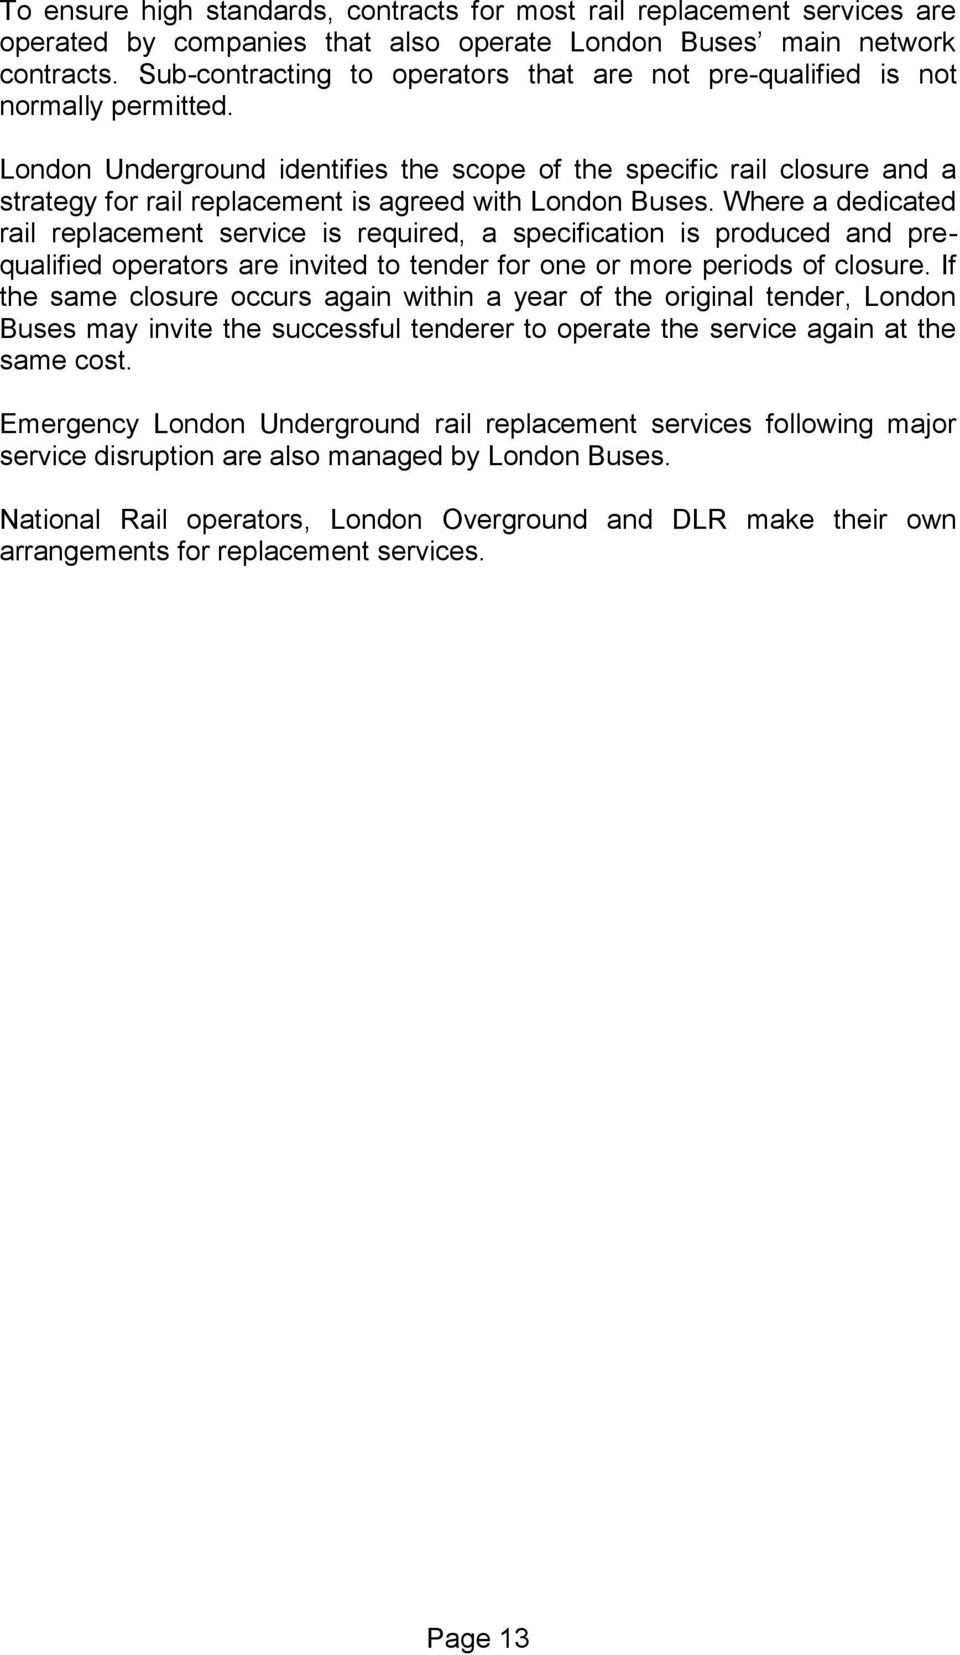 London Underground identifies the scope of the specific rail closure and a strategy for rail replacement is agreed with London Buses.